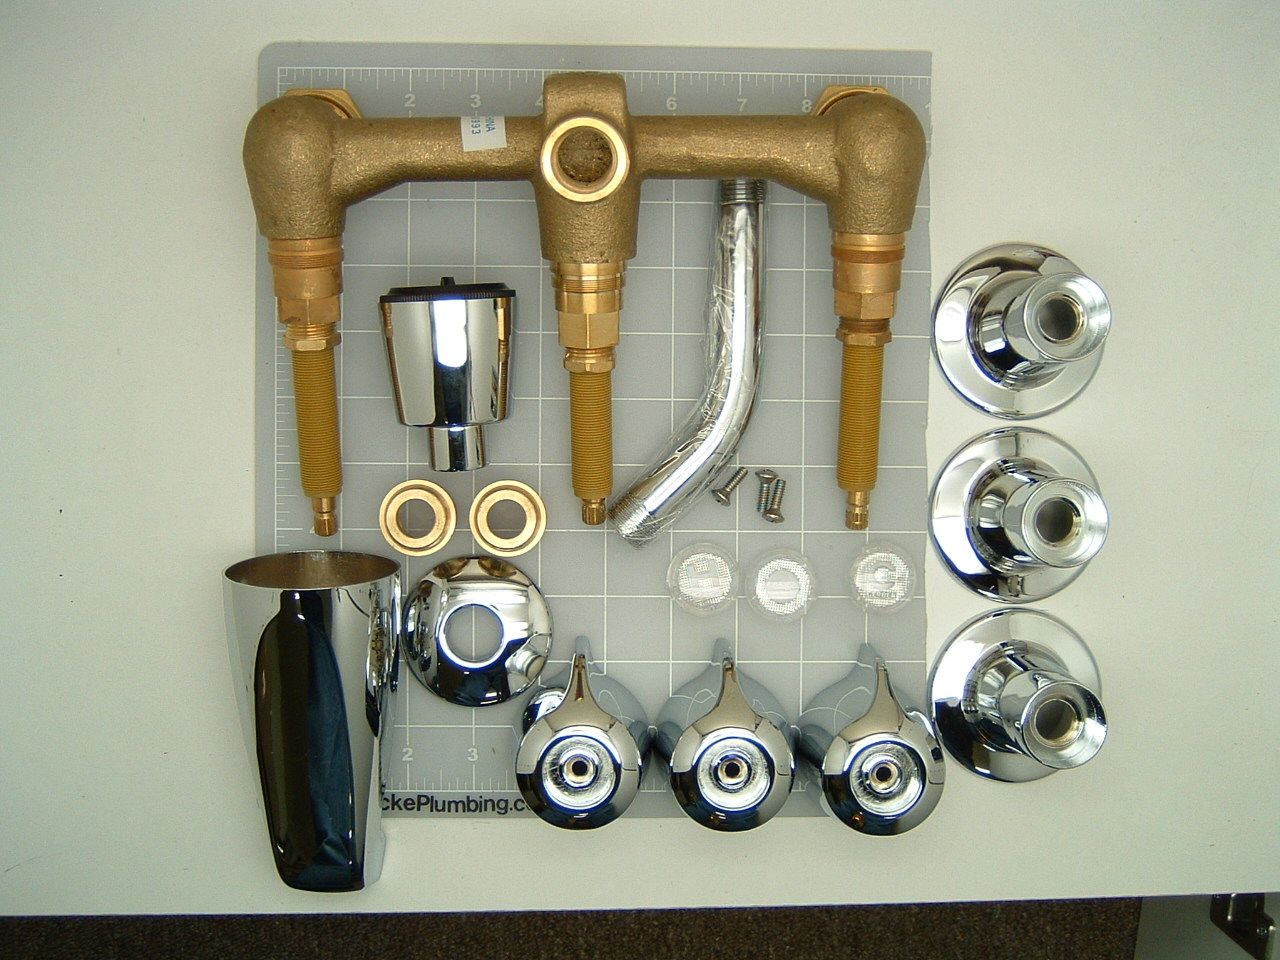 brass stem stems partsmasterpro home gerber diverter shower for depot faucets faucet the tub and p gb